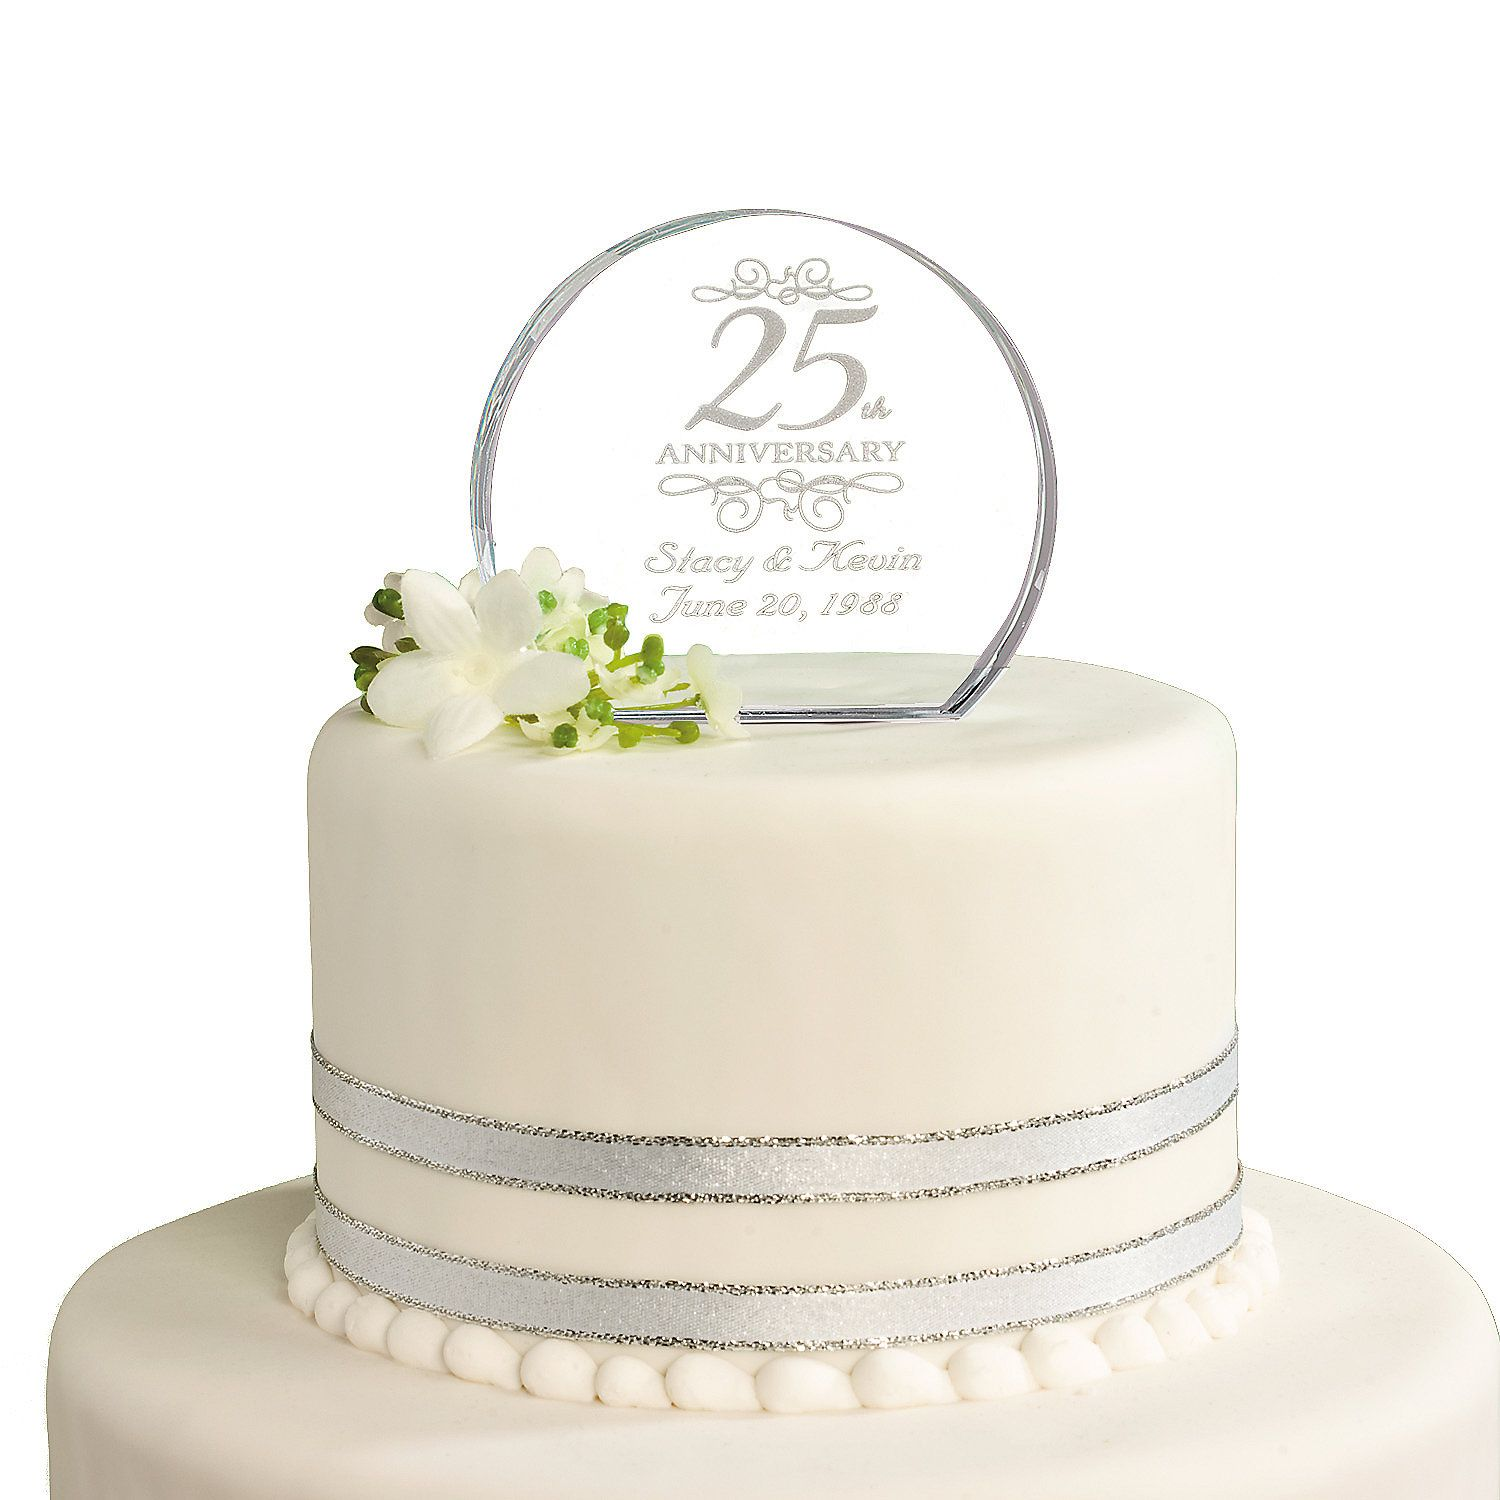 25th Wedding Anniversary Cake Ideas: Personalized 25th Anniversary Cake Topper